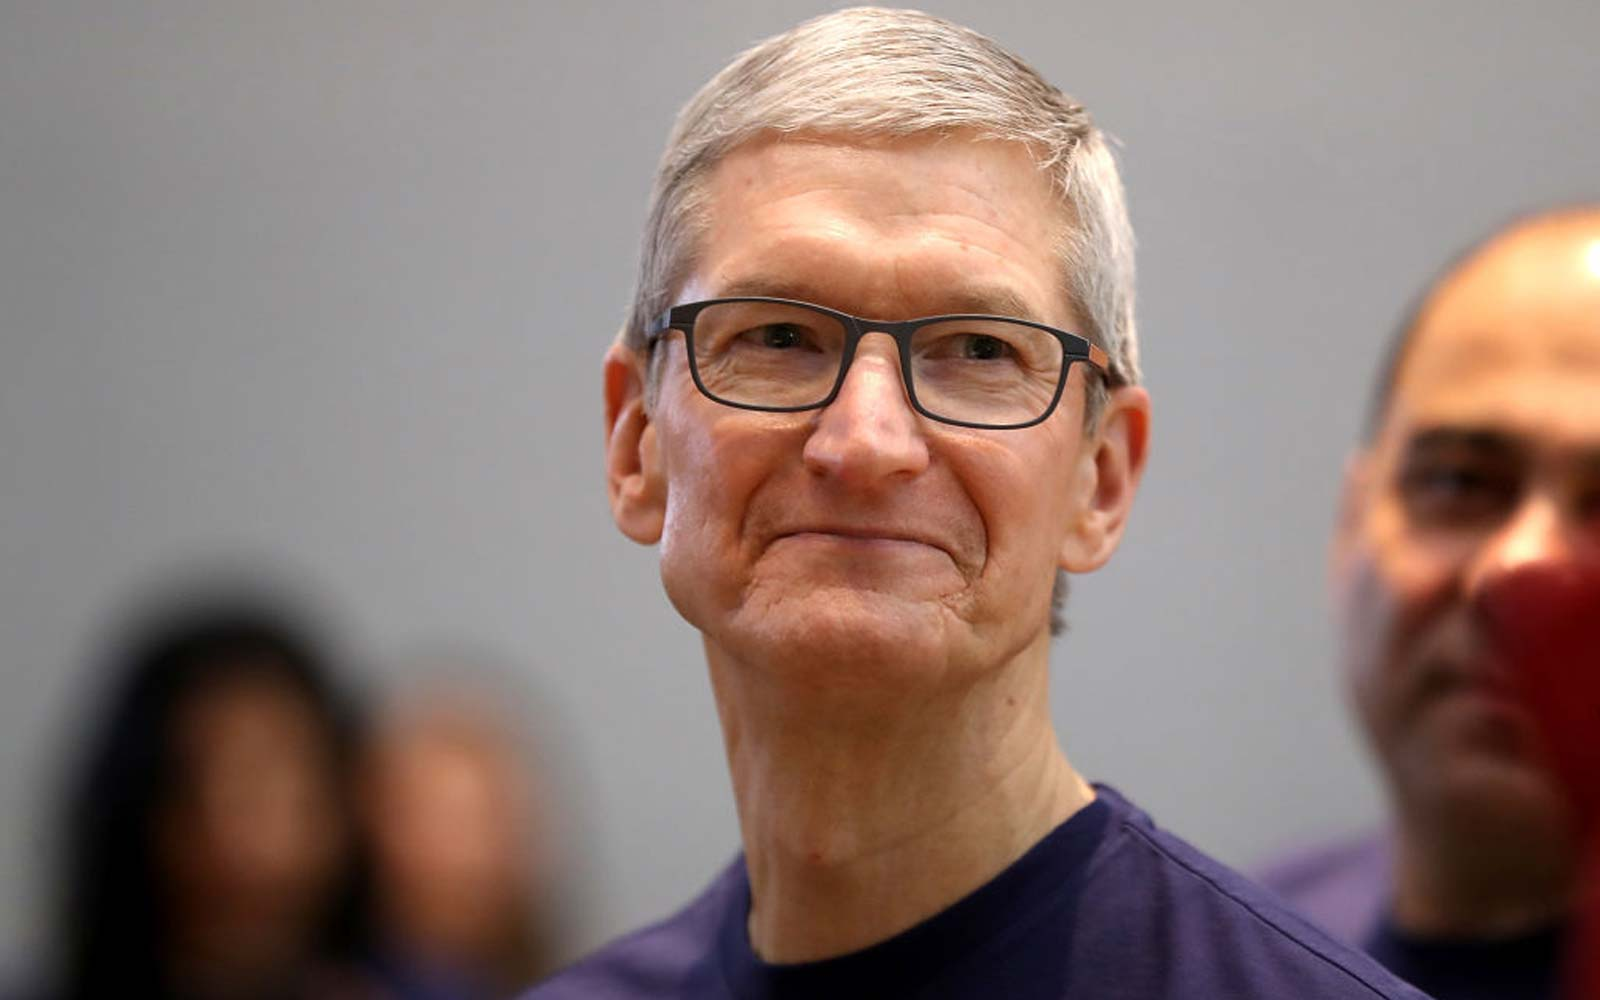 Tim Cook looks on as the new iPhone X goes on sale